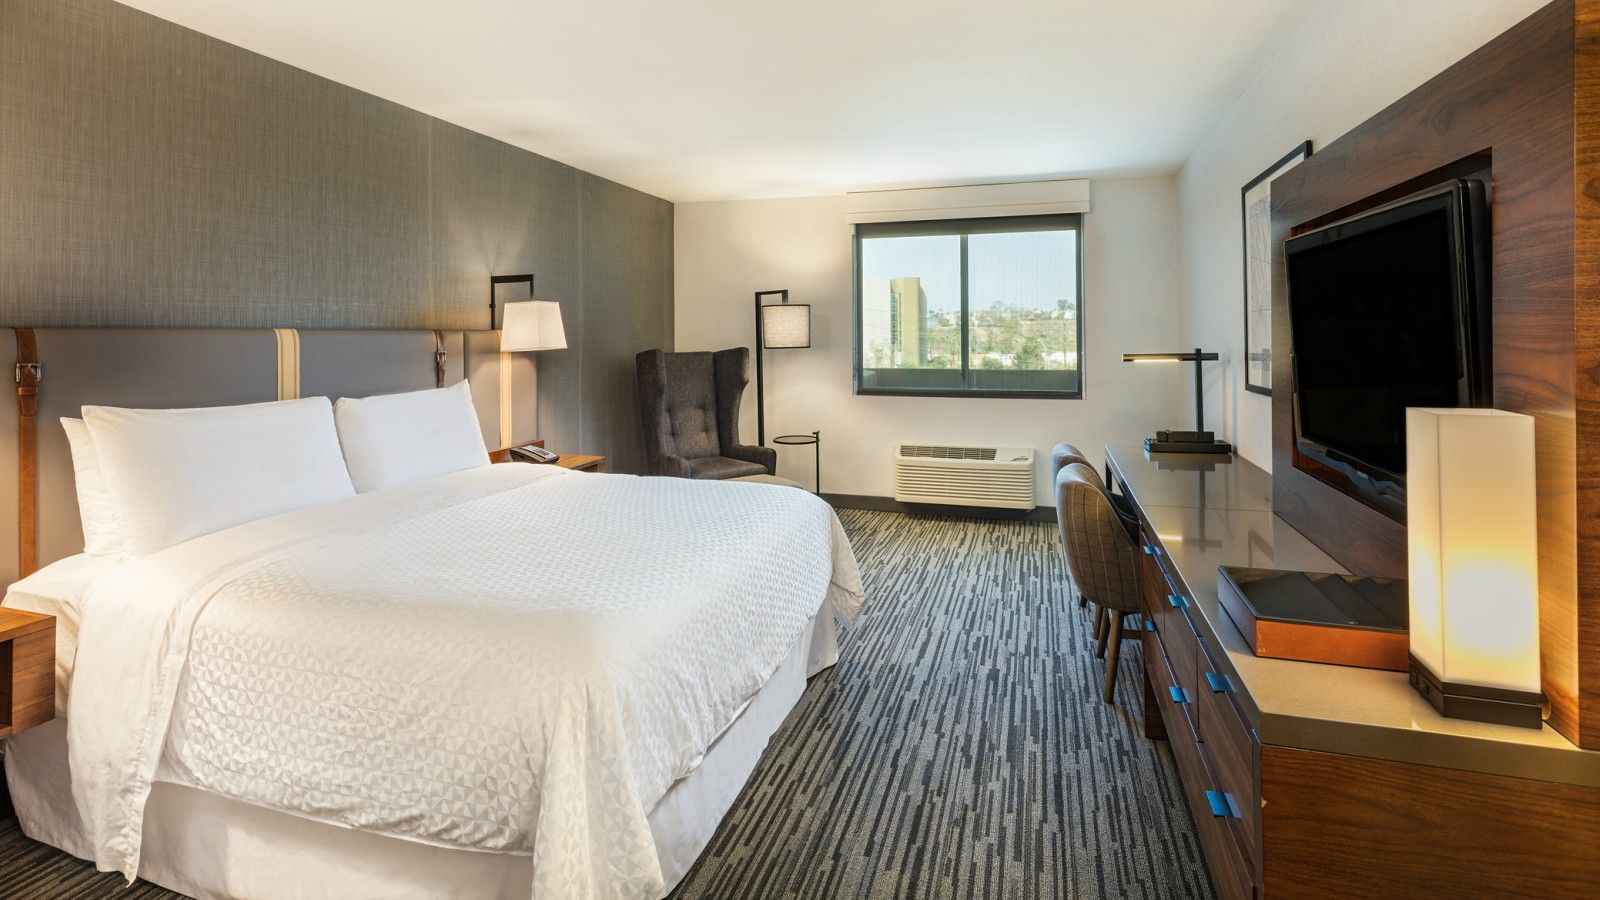 Los Angeles Accommodations - Accessible Guest Room